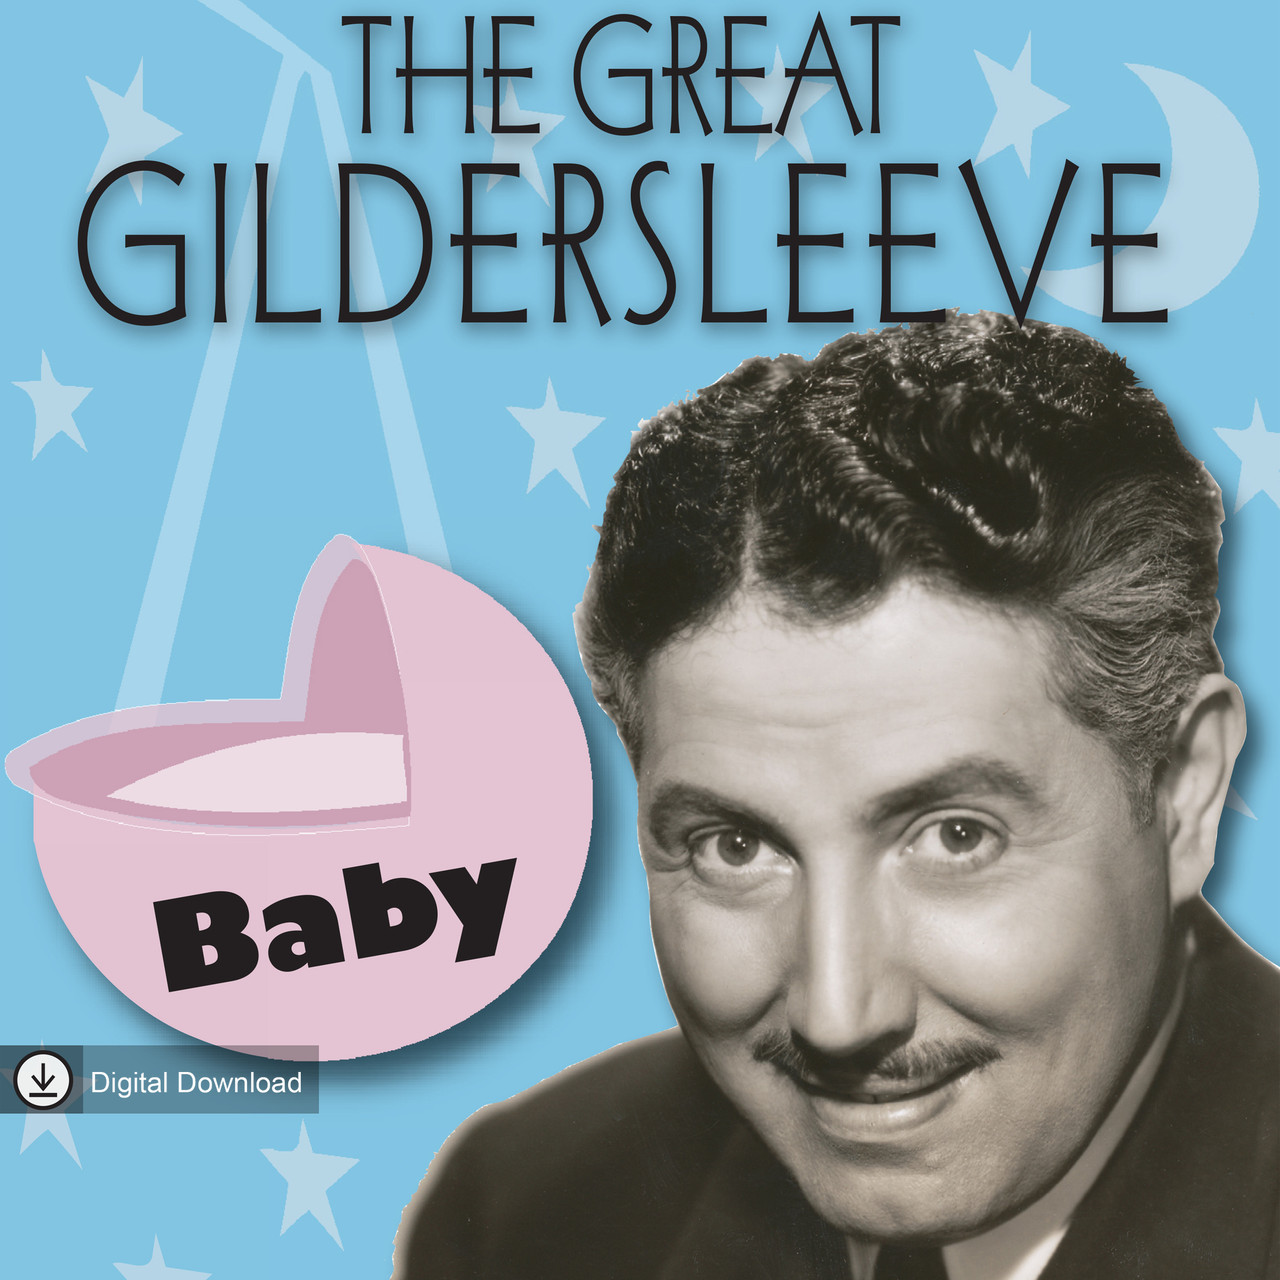 The Great Gildersleeve: Baby (MP3 Download)